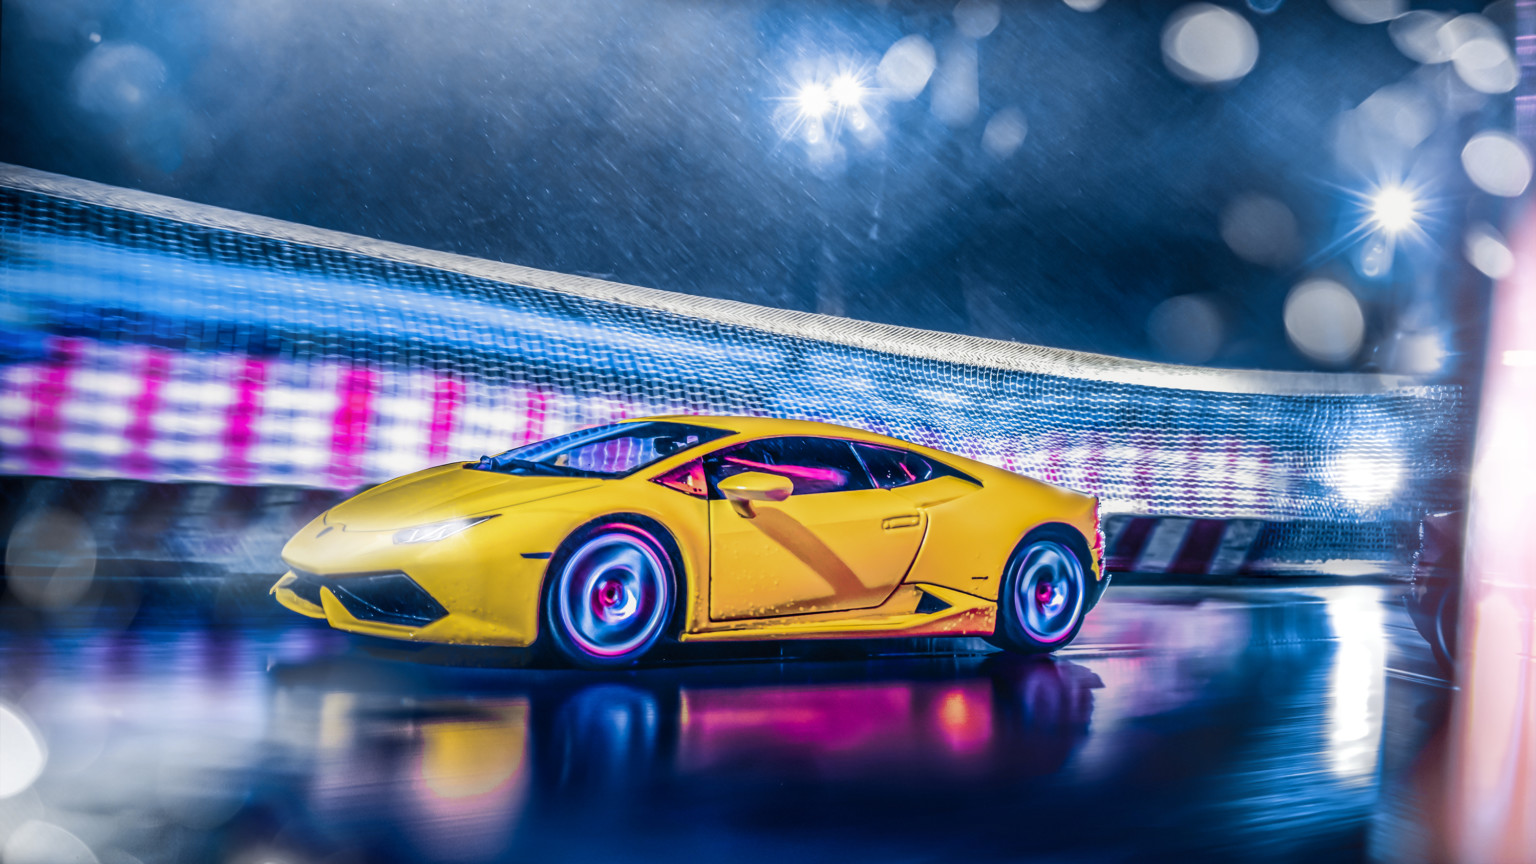 Lamborghini Toy Car Photography (7)